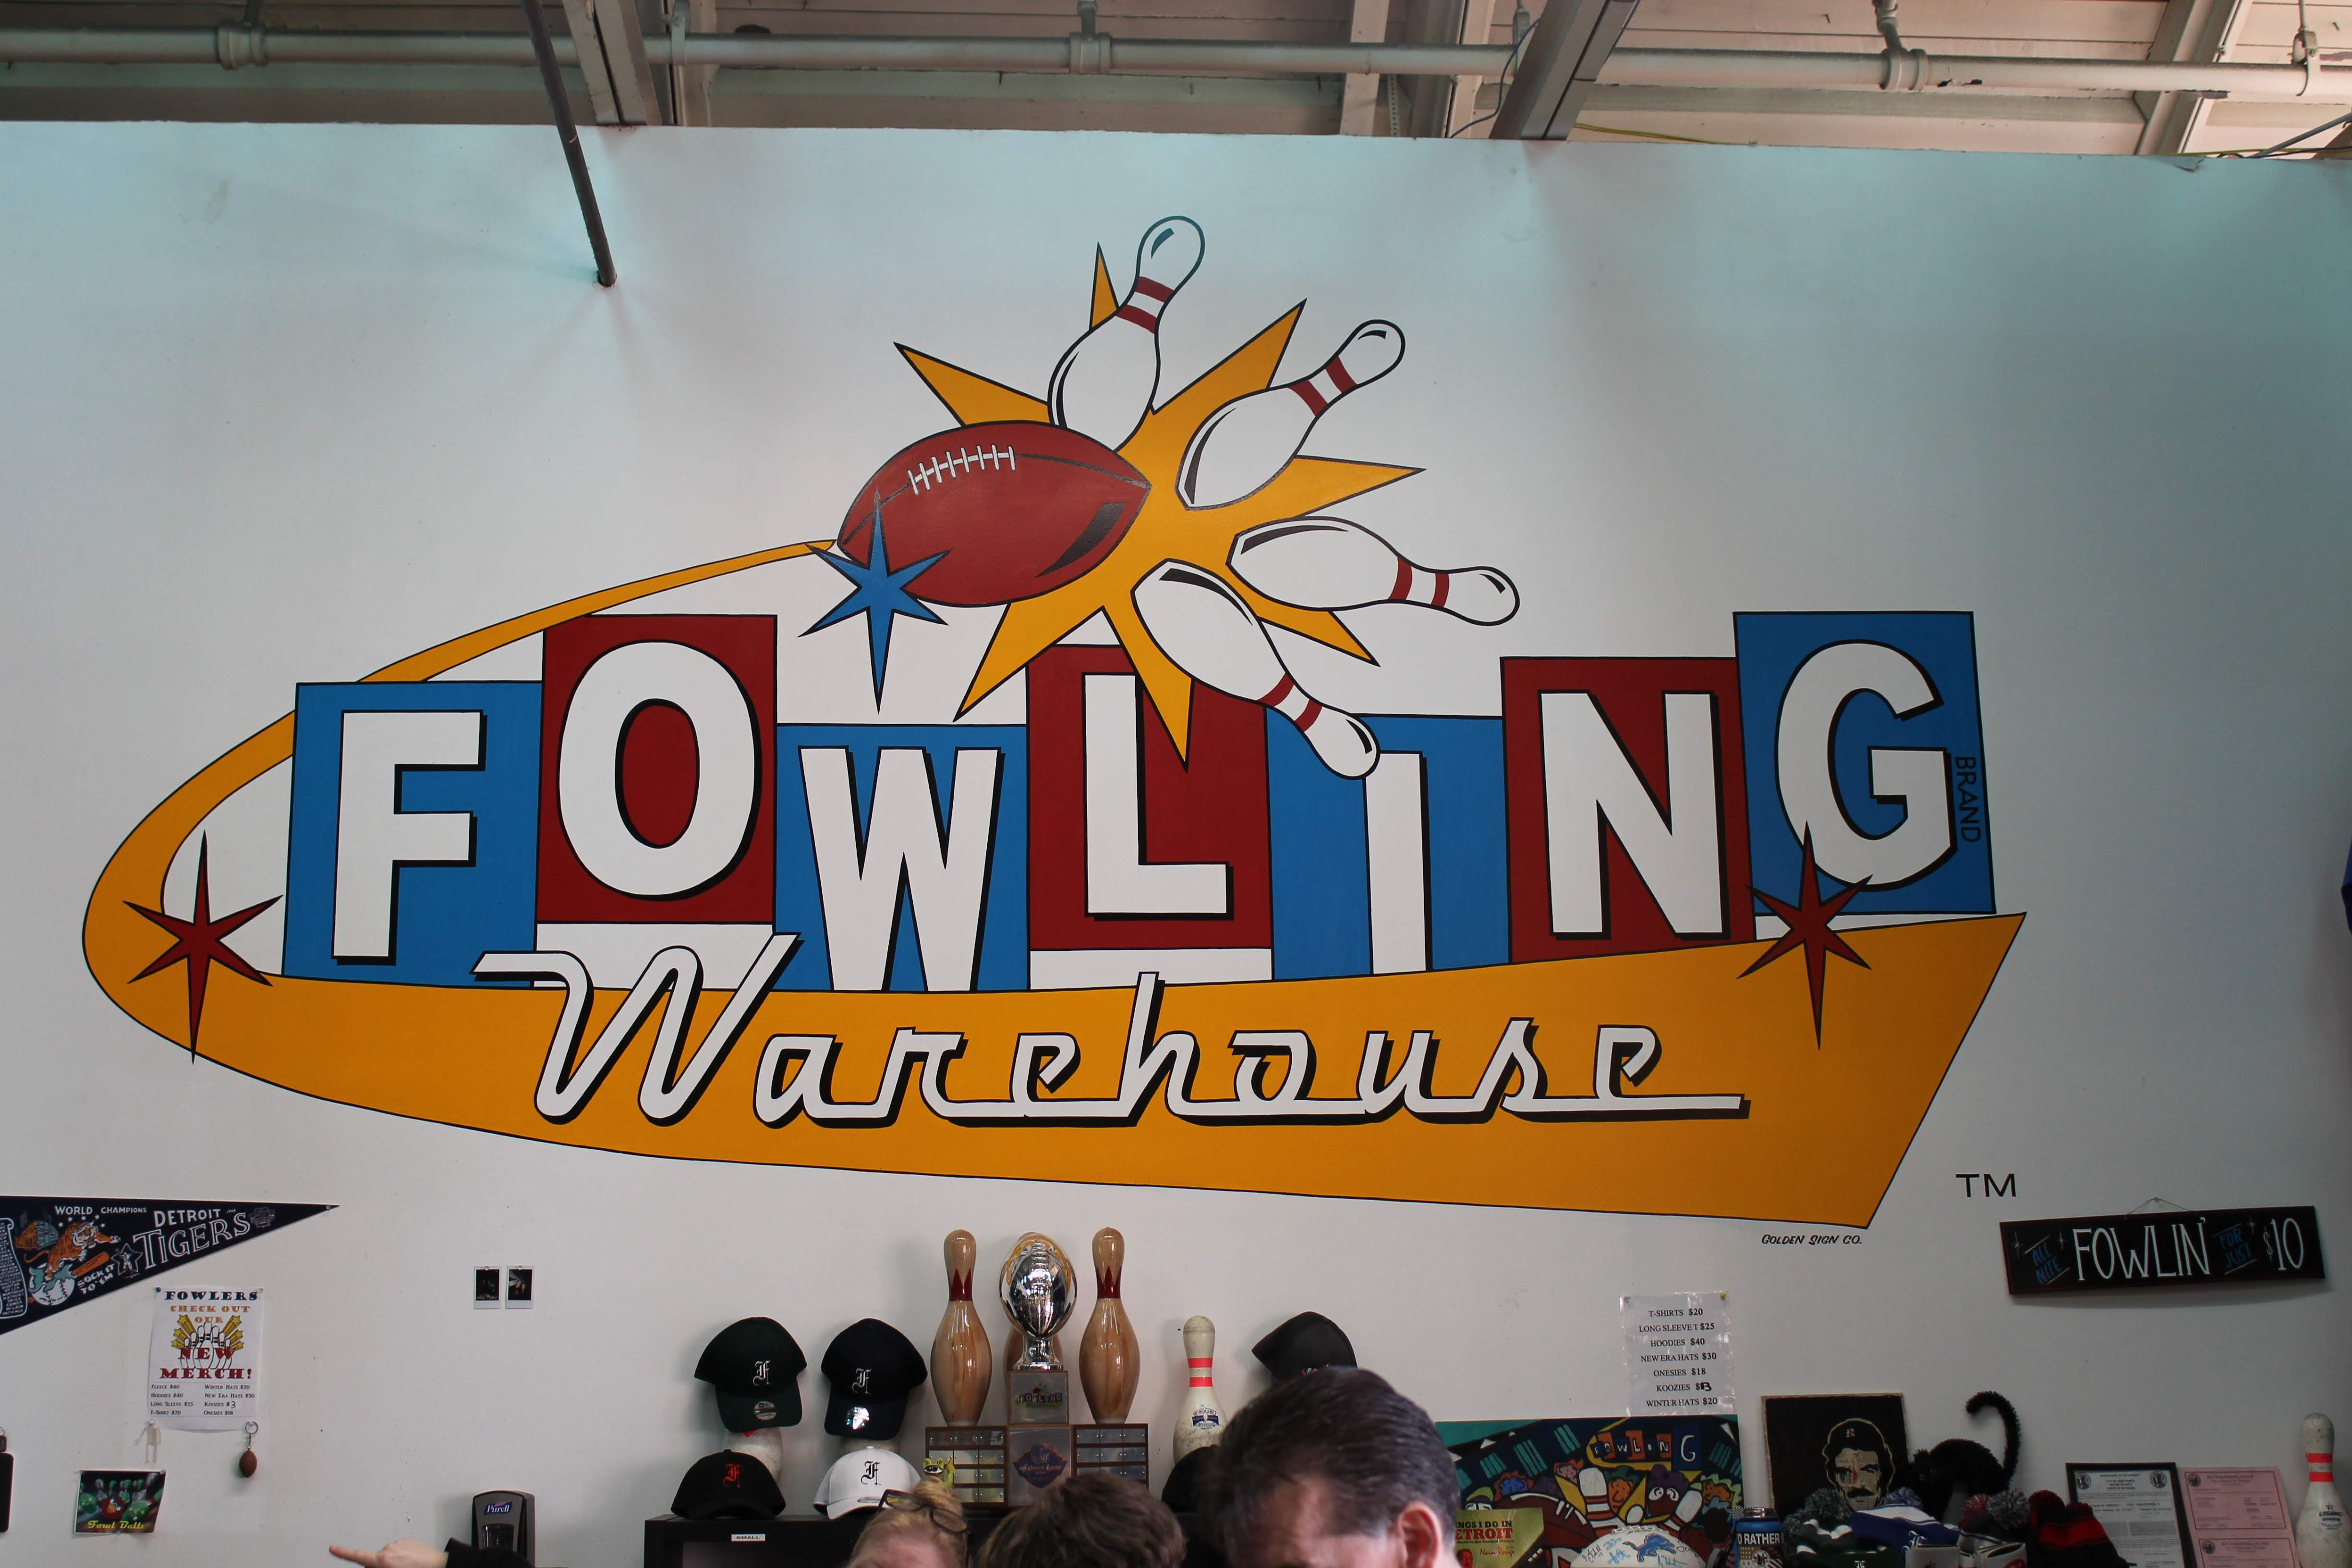 Photograph of the sign at the Fowling Warehouse